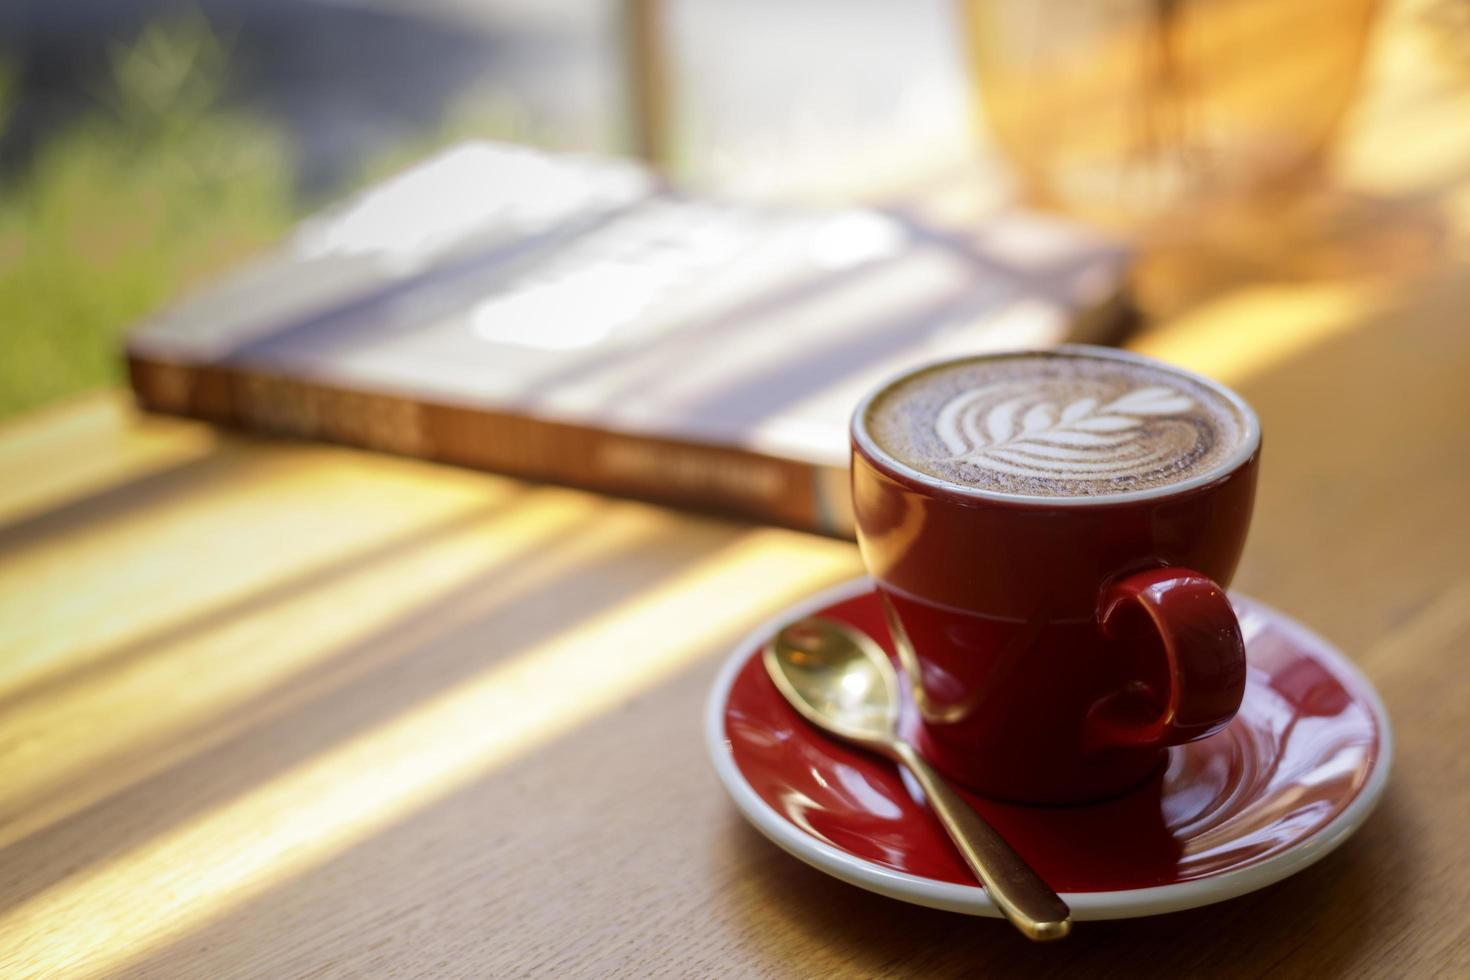 Close up of hot art latte, cappuccino coffee in a red cup on a wooden table in a coffee shop with a blurred background photo